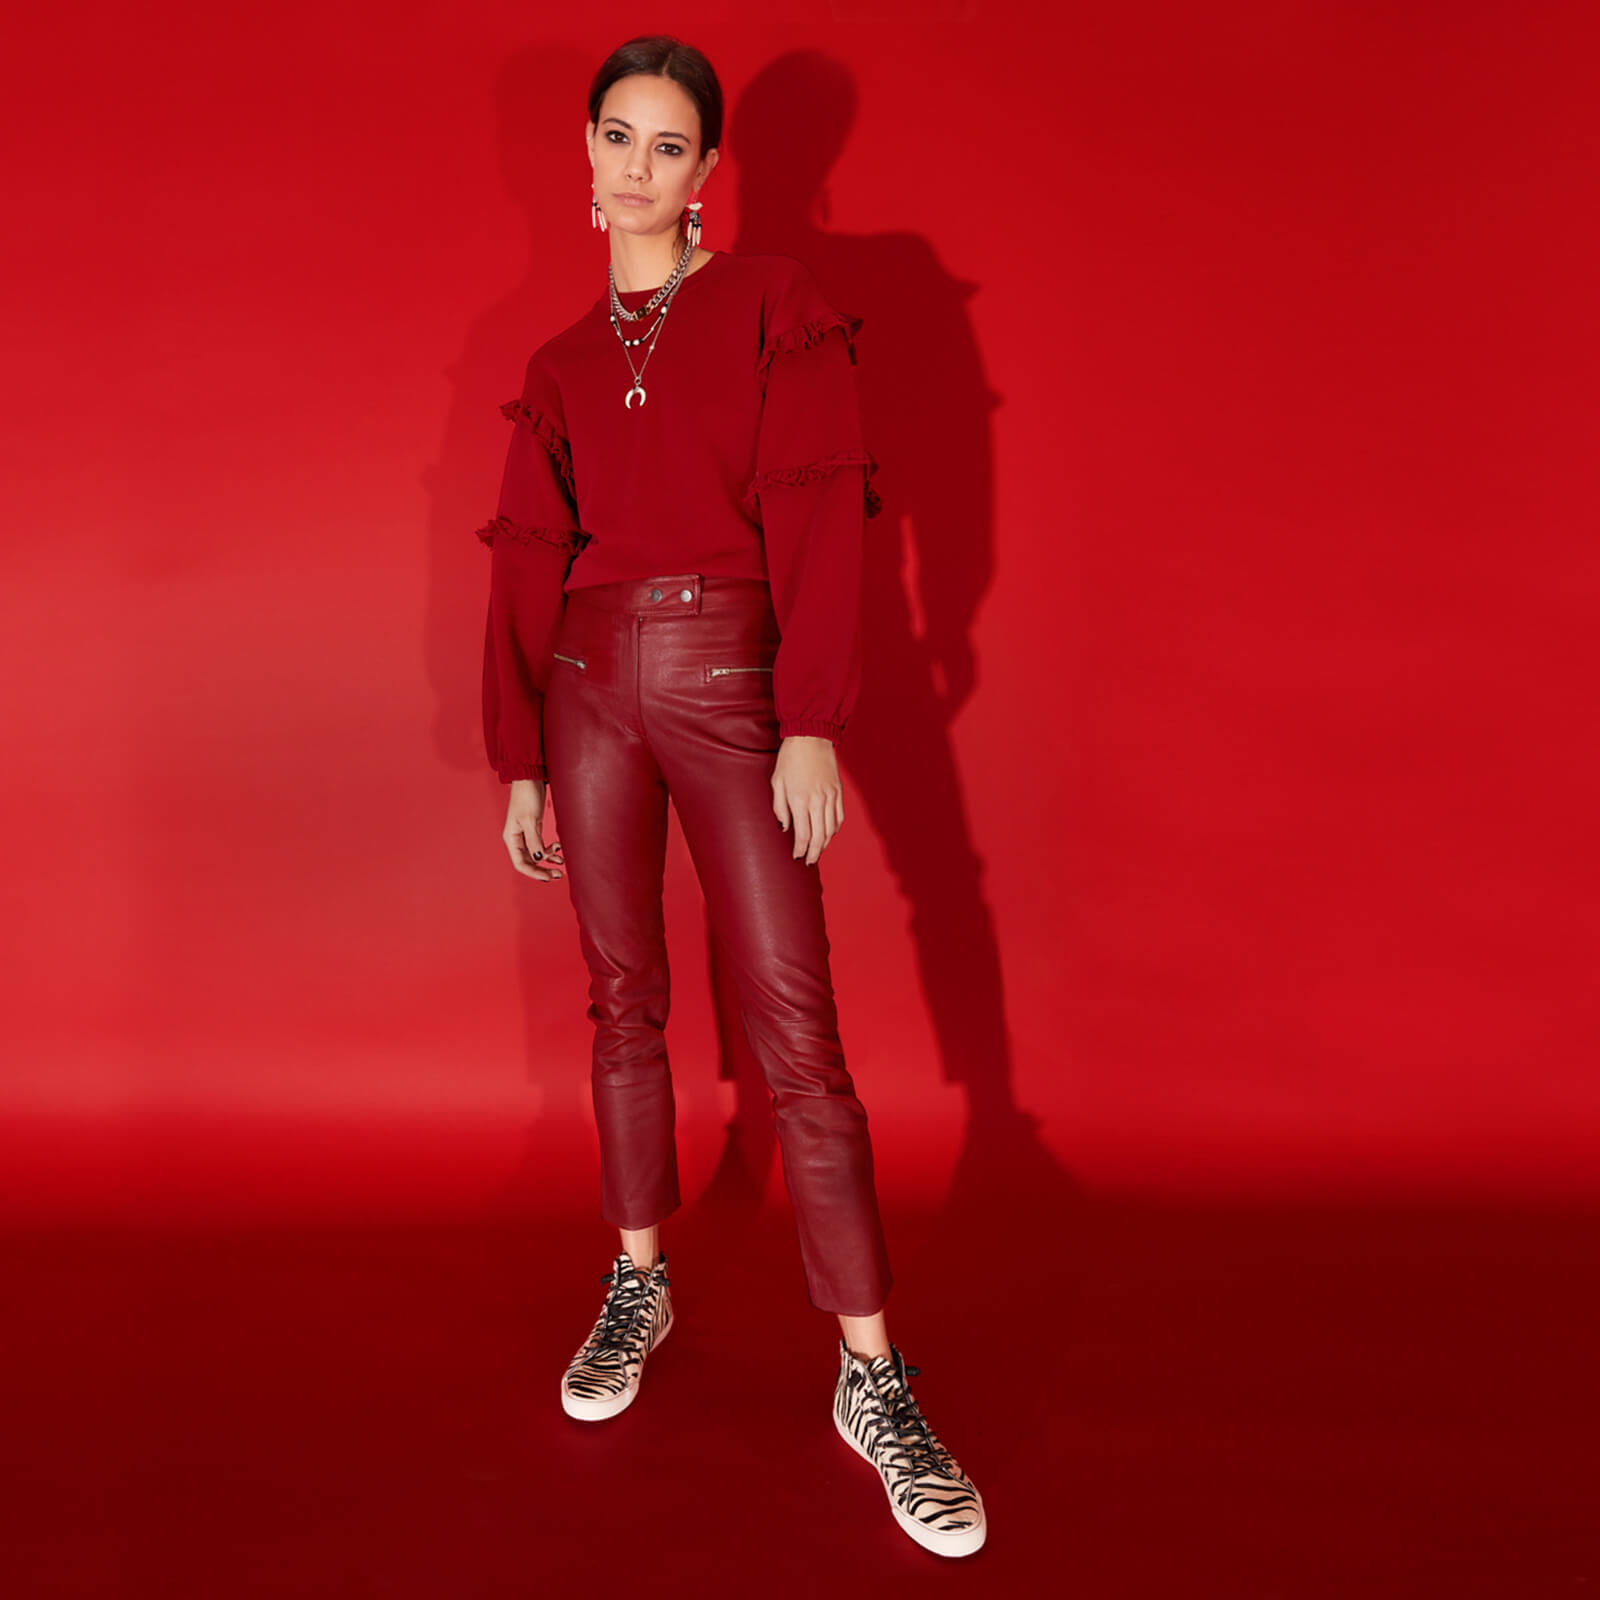 Model dressed in red against a red background wearing shoes from the Sperry x Rebecca Minkoff collab.